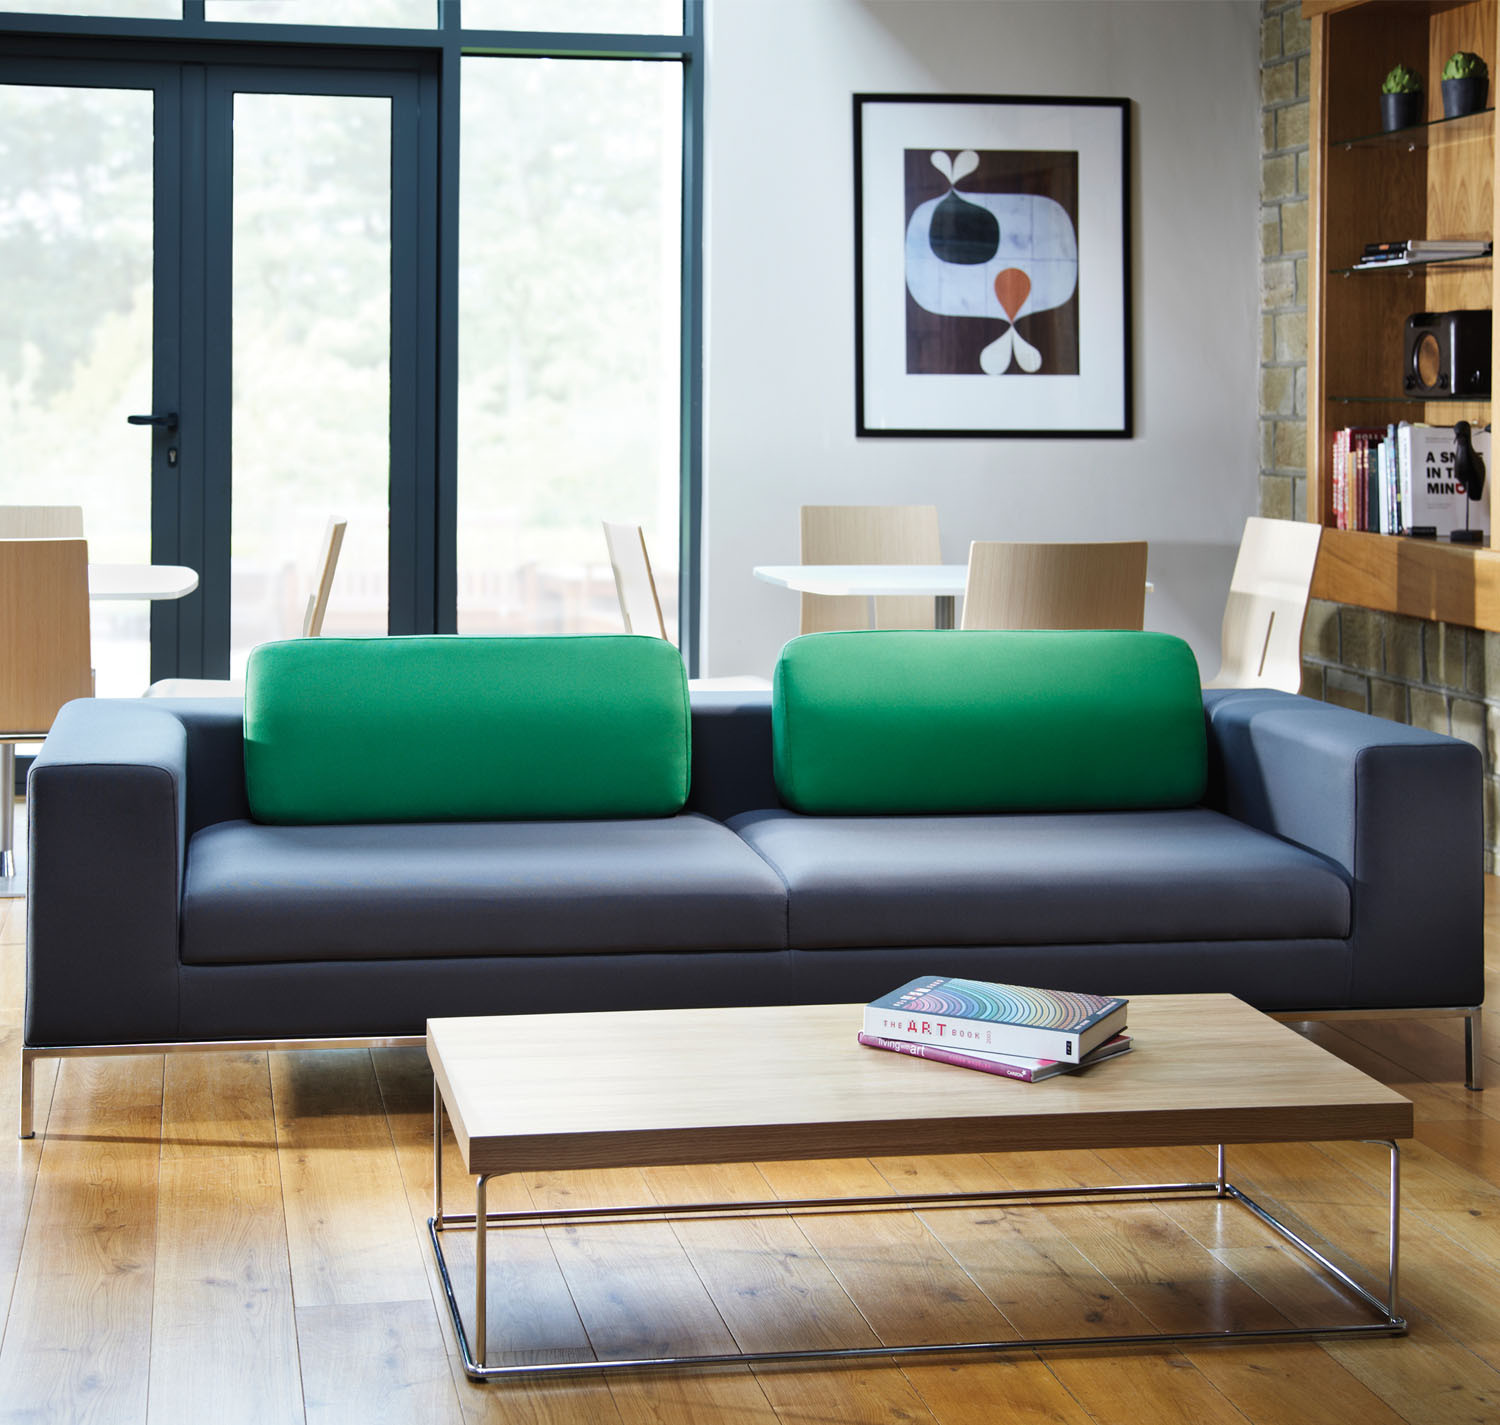 Zeus Modular Sofa by David Fox